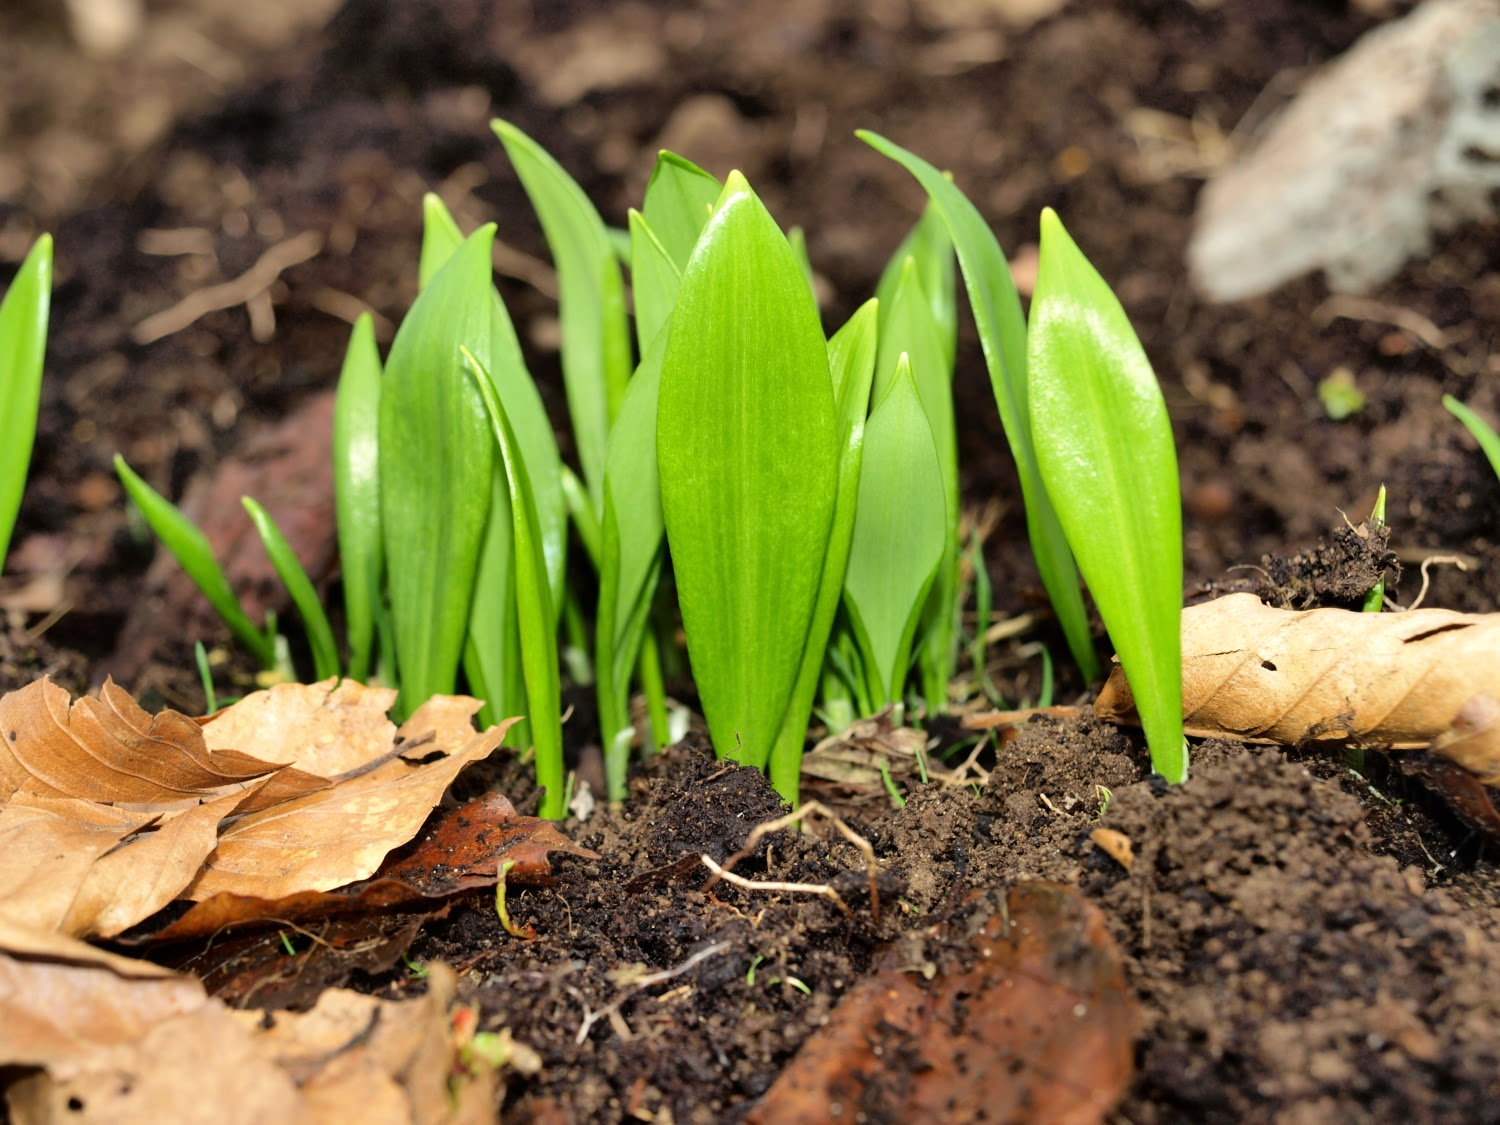 An image of wild garlic (Allium ursinum) leaves just emerging from the ground.